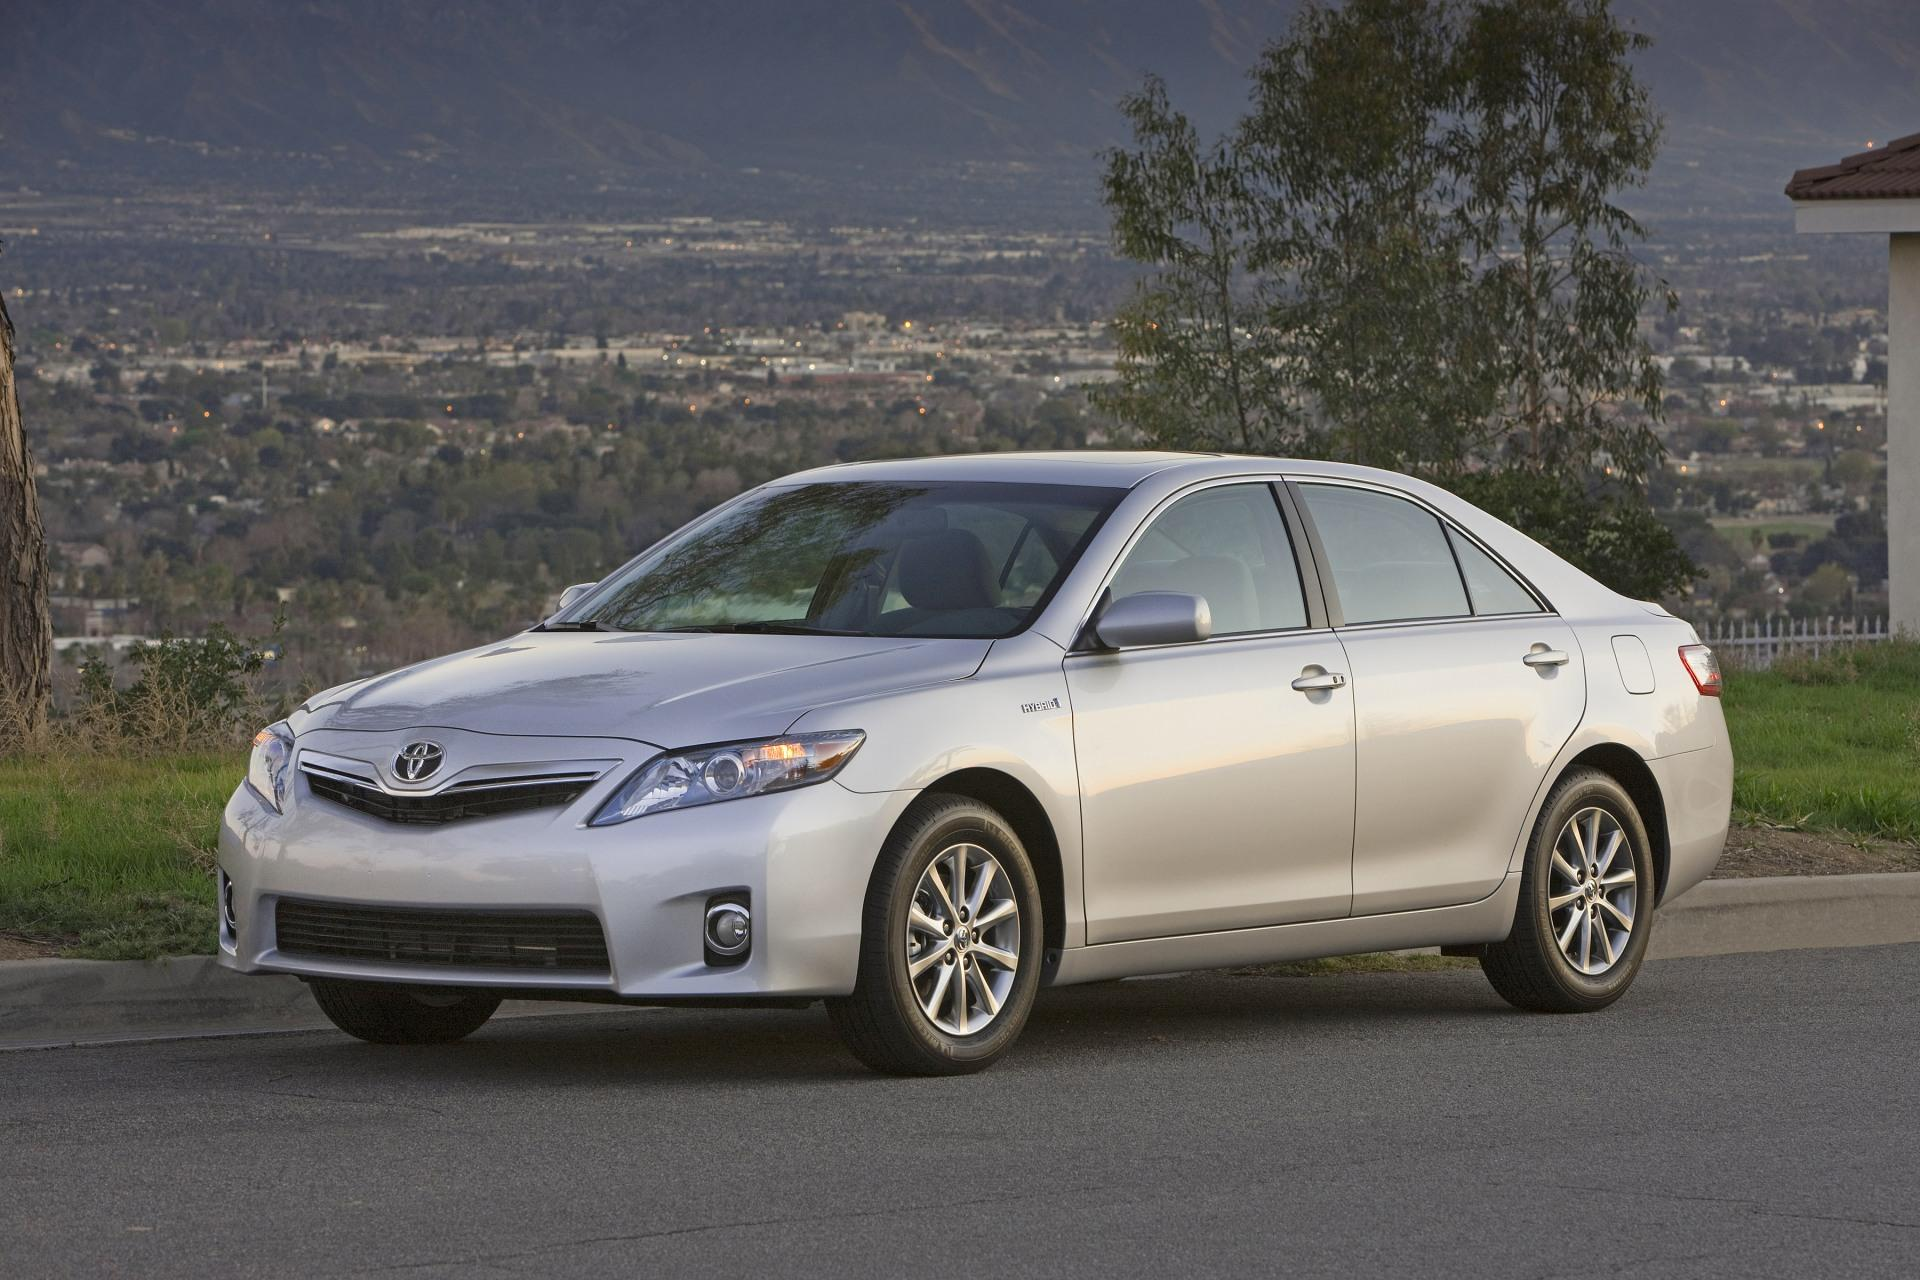 2011 toyota camry hybrid technical specifications and data engine dimensions and mechanical. Black Bedroom Furniture Sets. Home Design Ideas